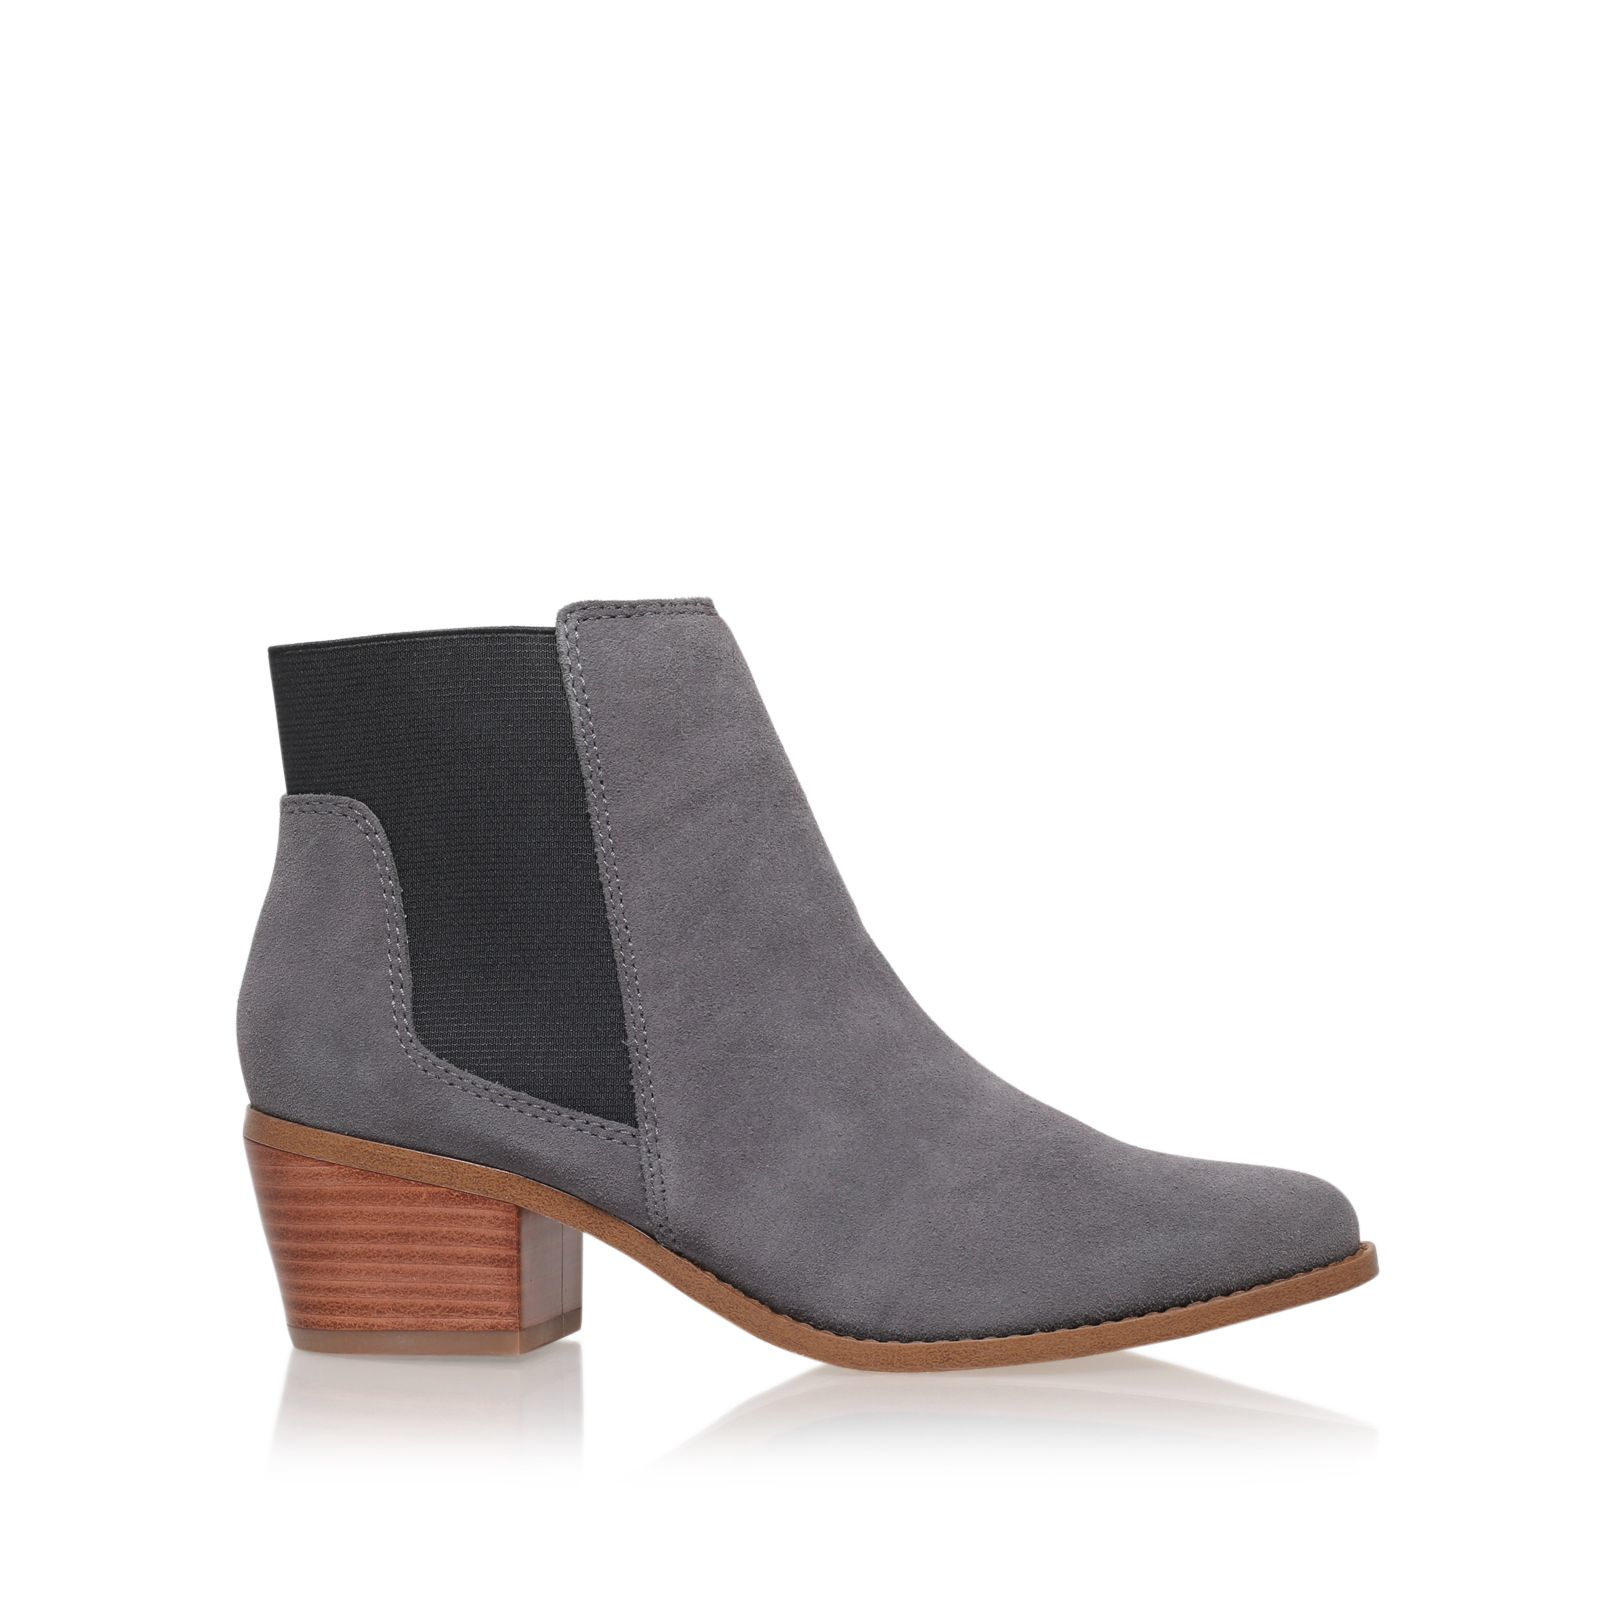 miss kg spider low block heel ankle boots in gray light